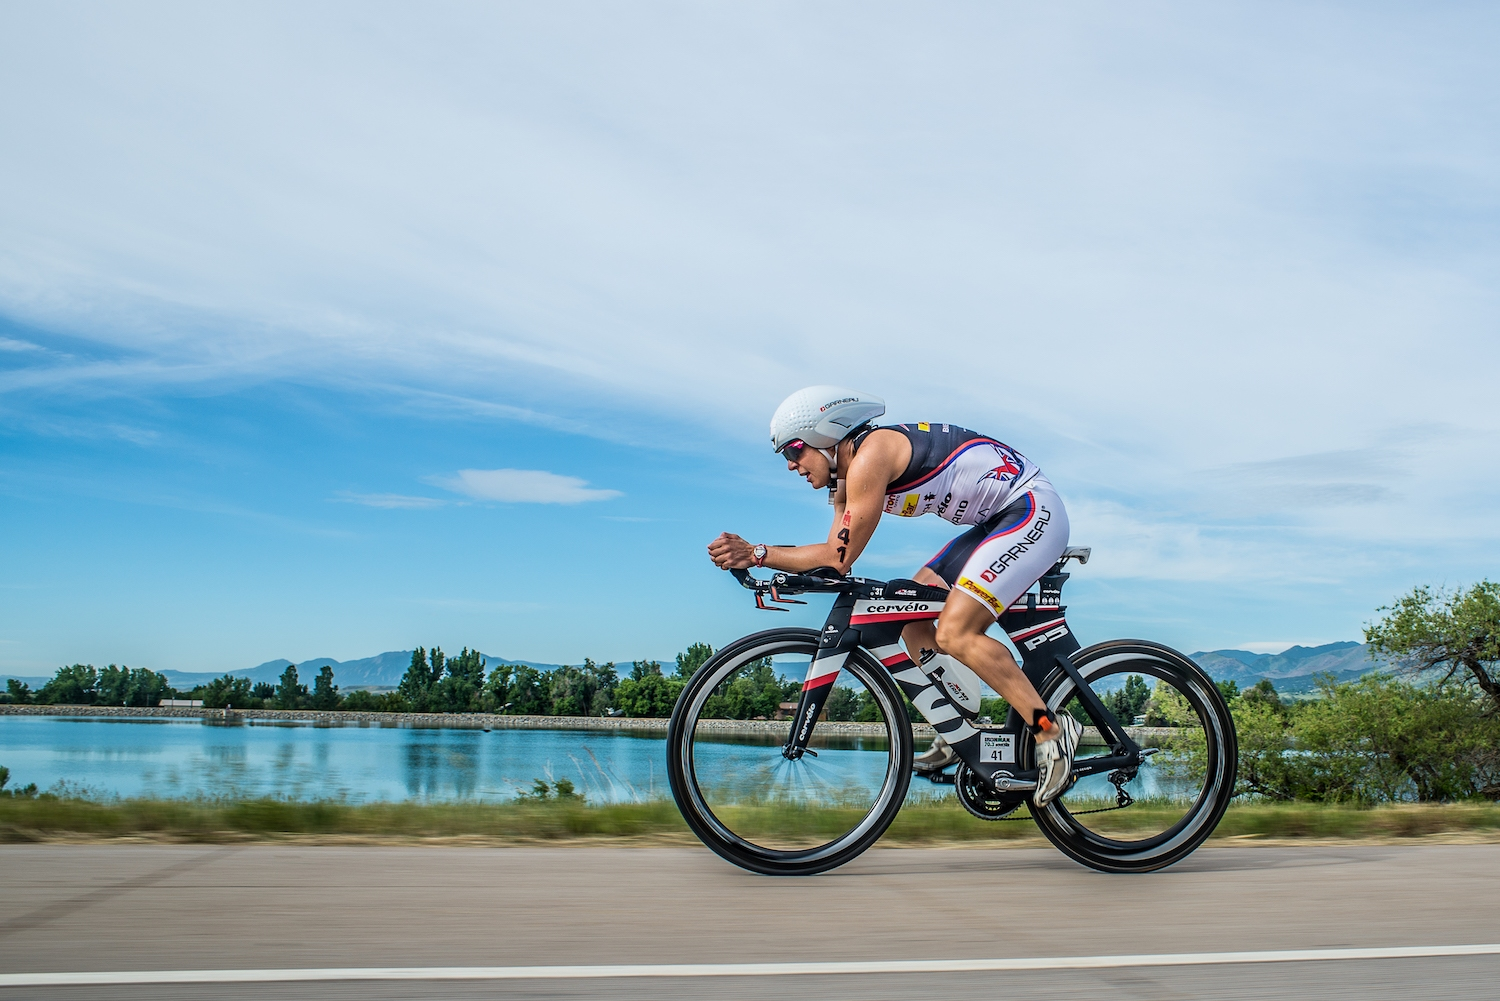 How To Watch The Ironman Race While Visiting Boulder